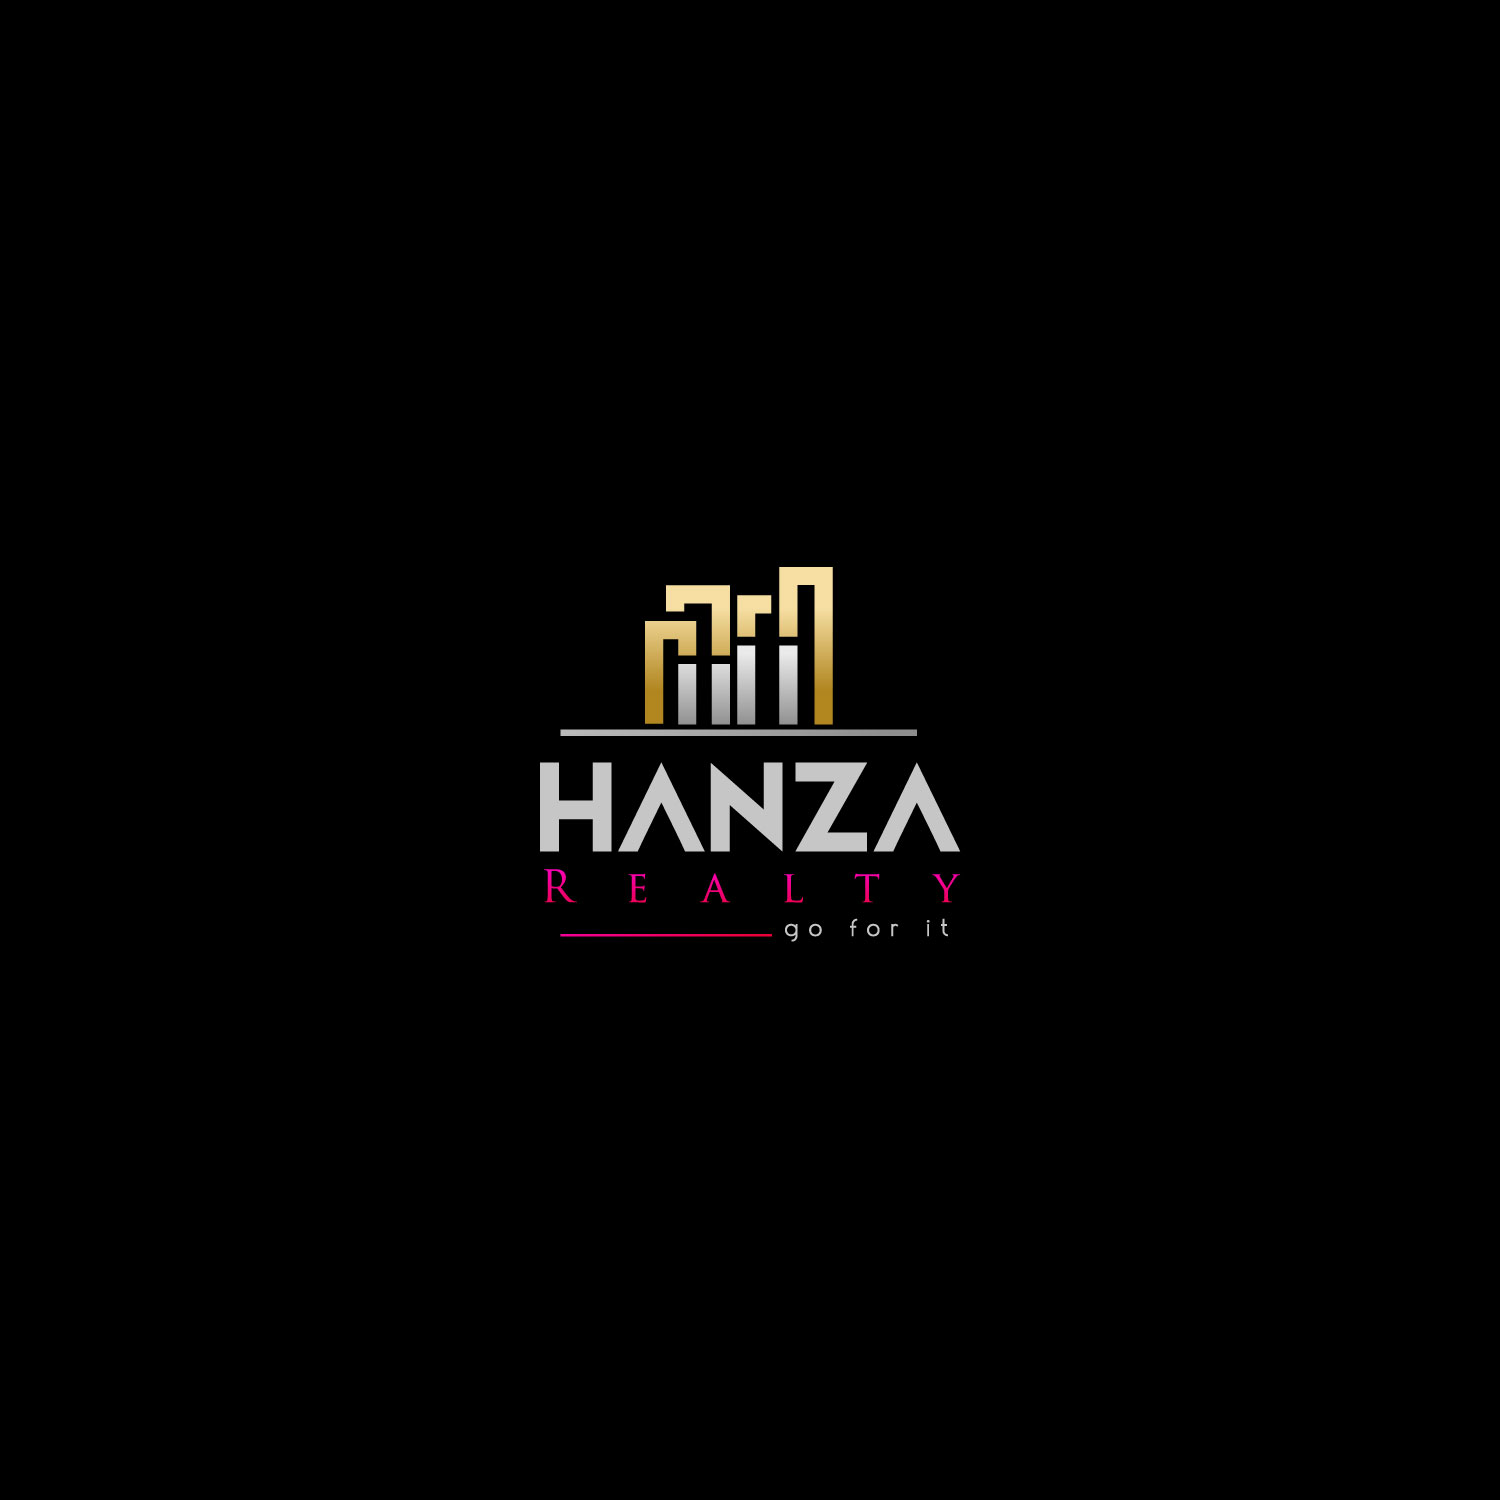 Logo Design by M h Rubel - Entry No. 326 in the Logo Design Contest Logo Design for Hanza Realty.